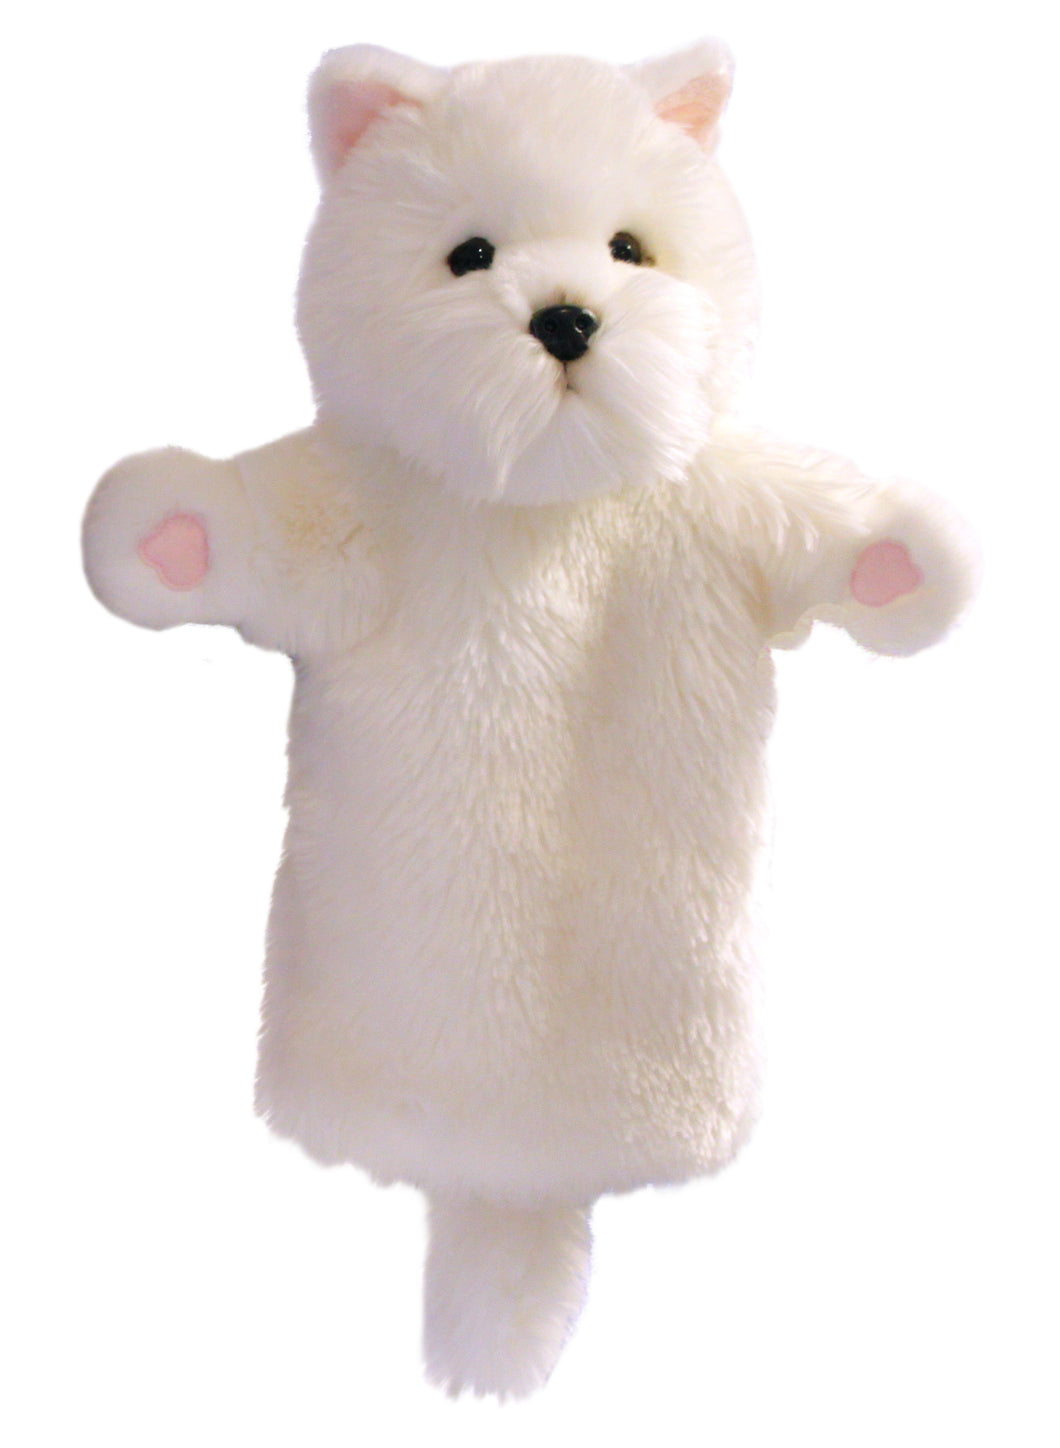 P398-PC006055-marionnette-West-Highland-White-Terrier-The-Puppet-Company-Long-Sleeved-Glove-Puppets